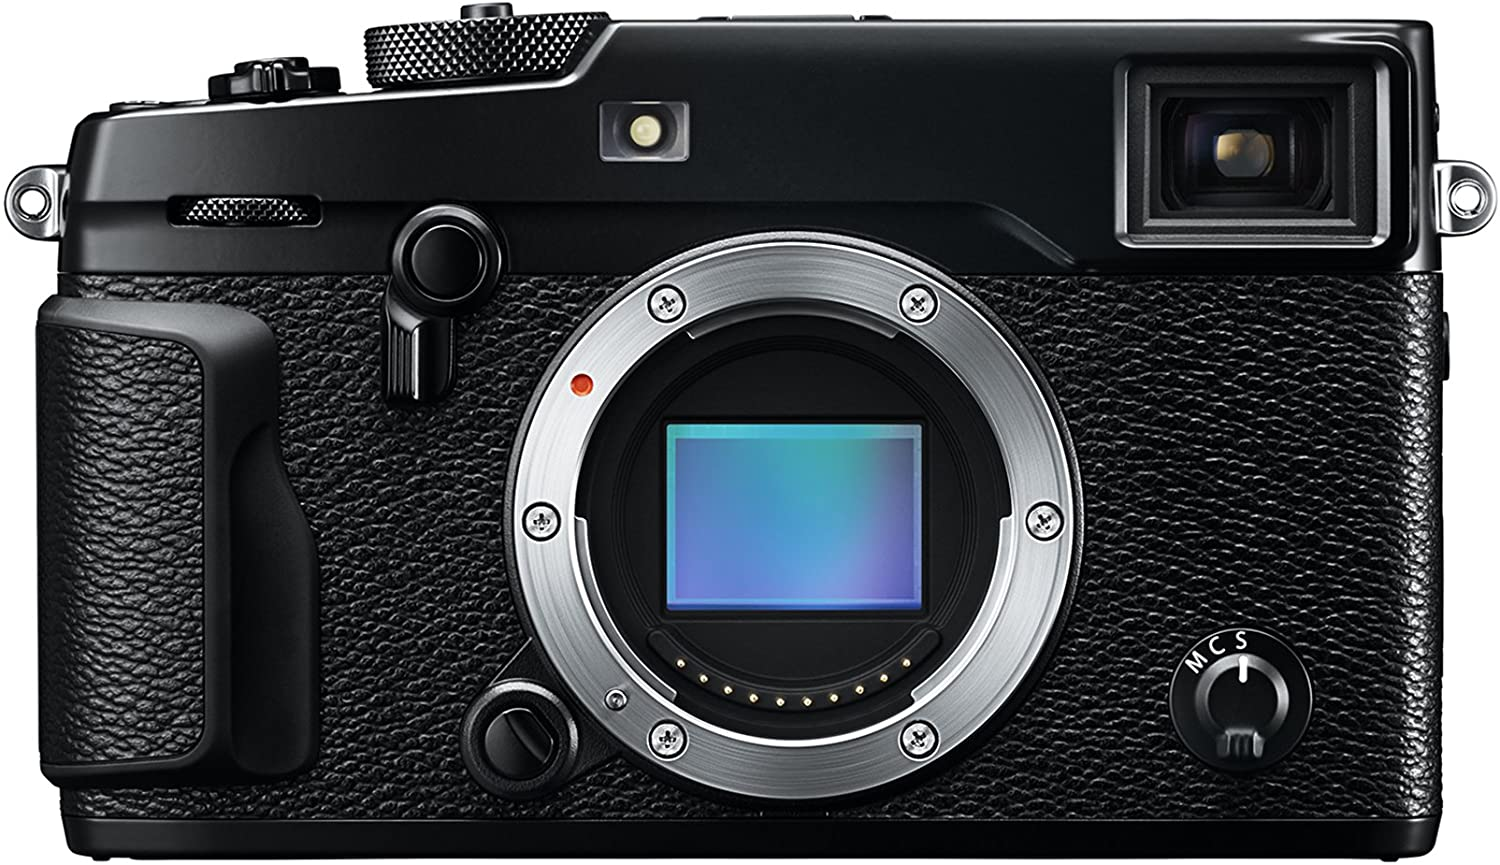 Fujifilm X-Pro 2 Mirrorless Digital Camera